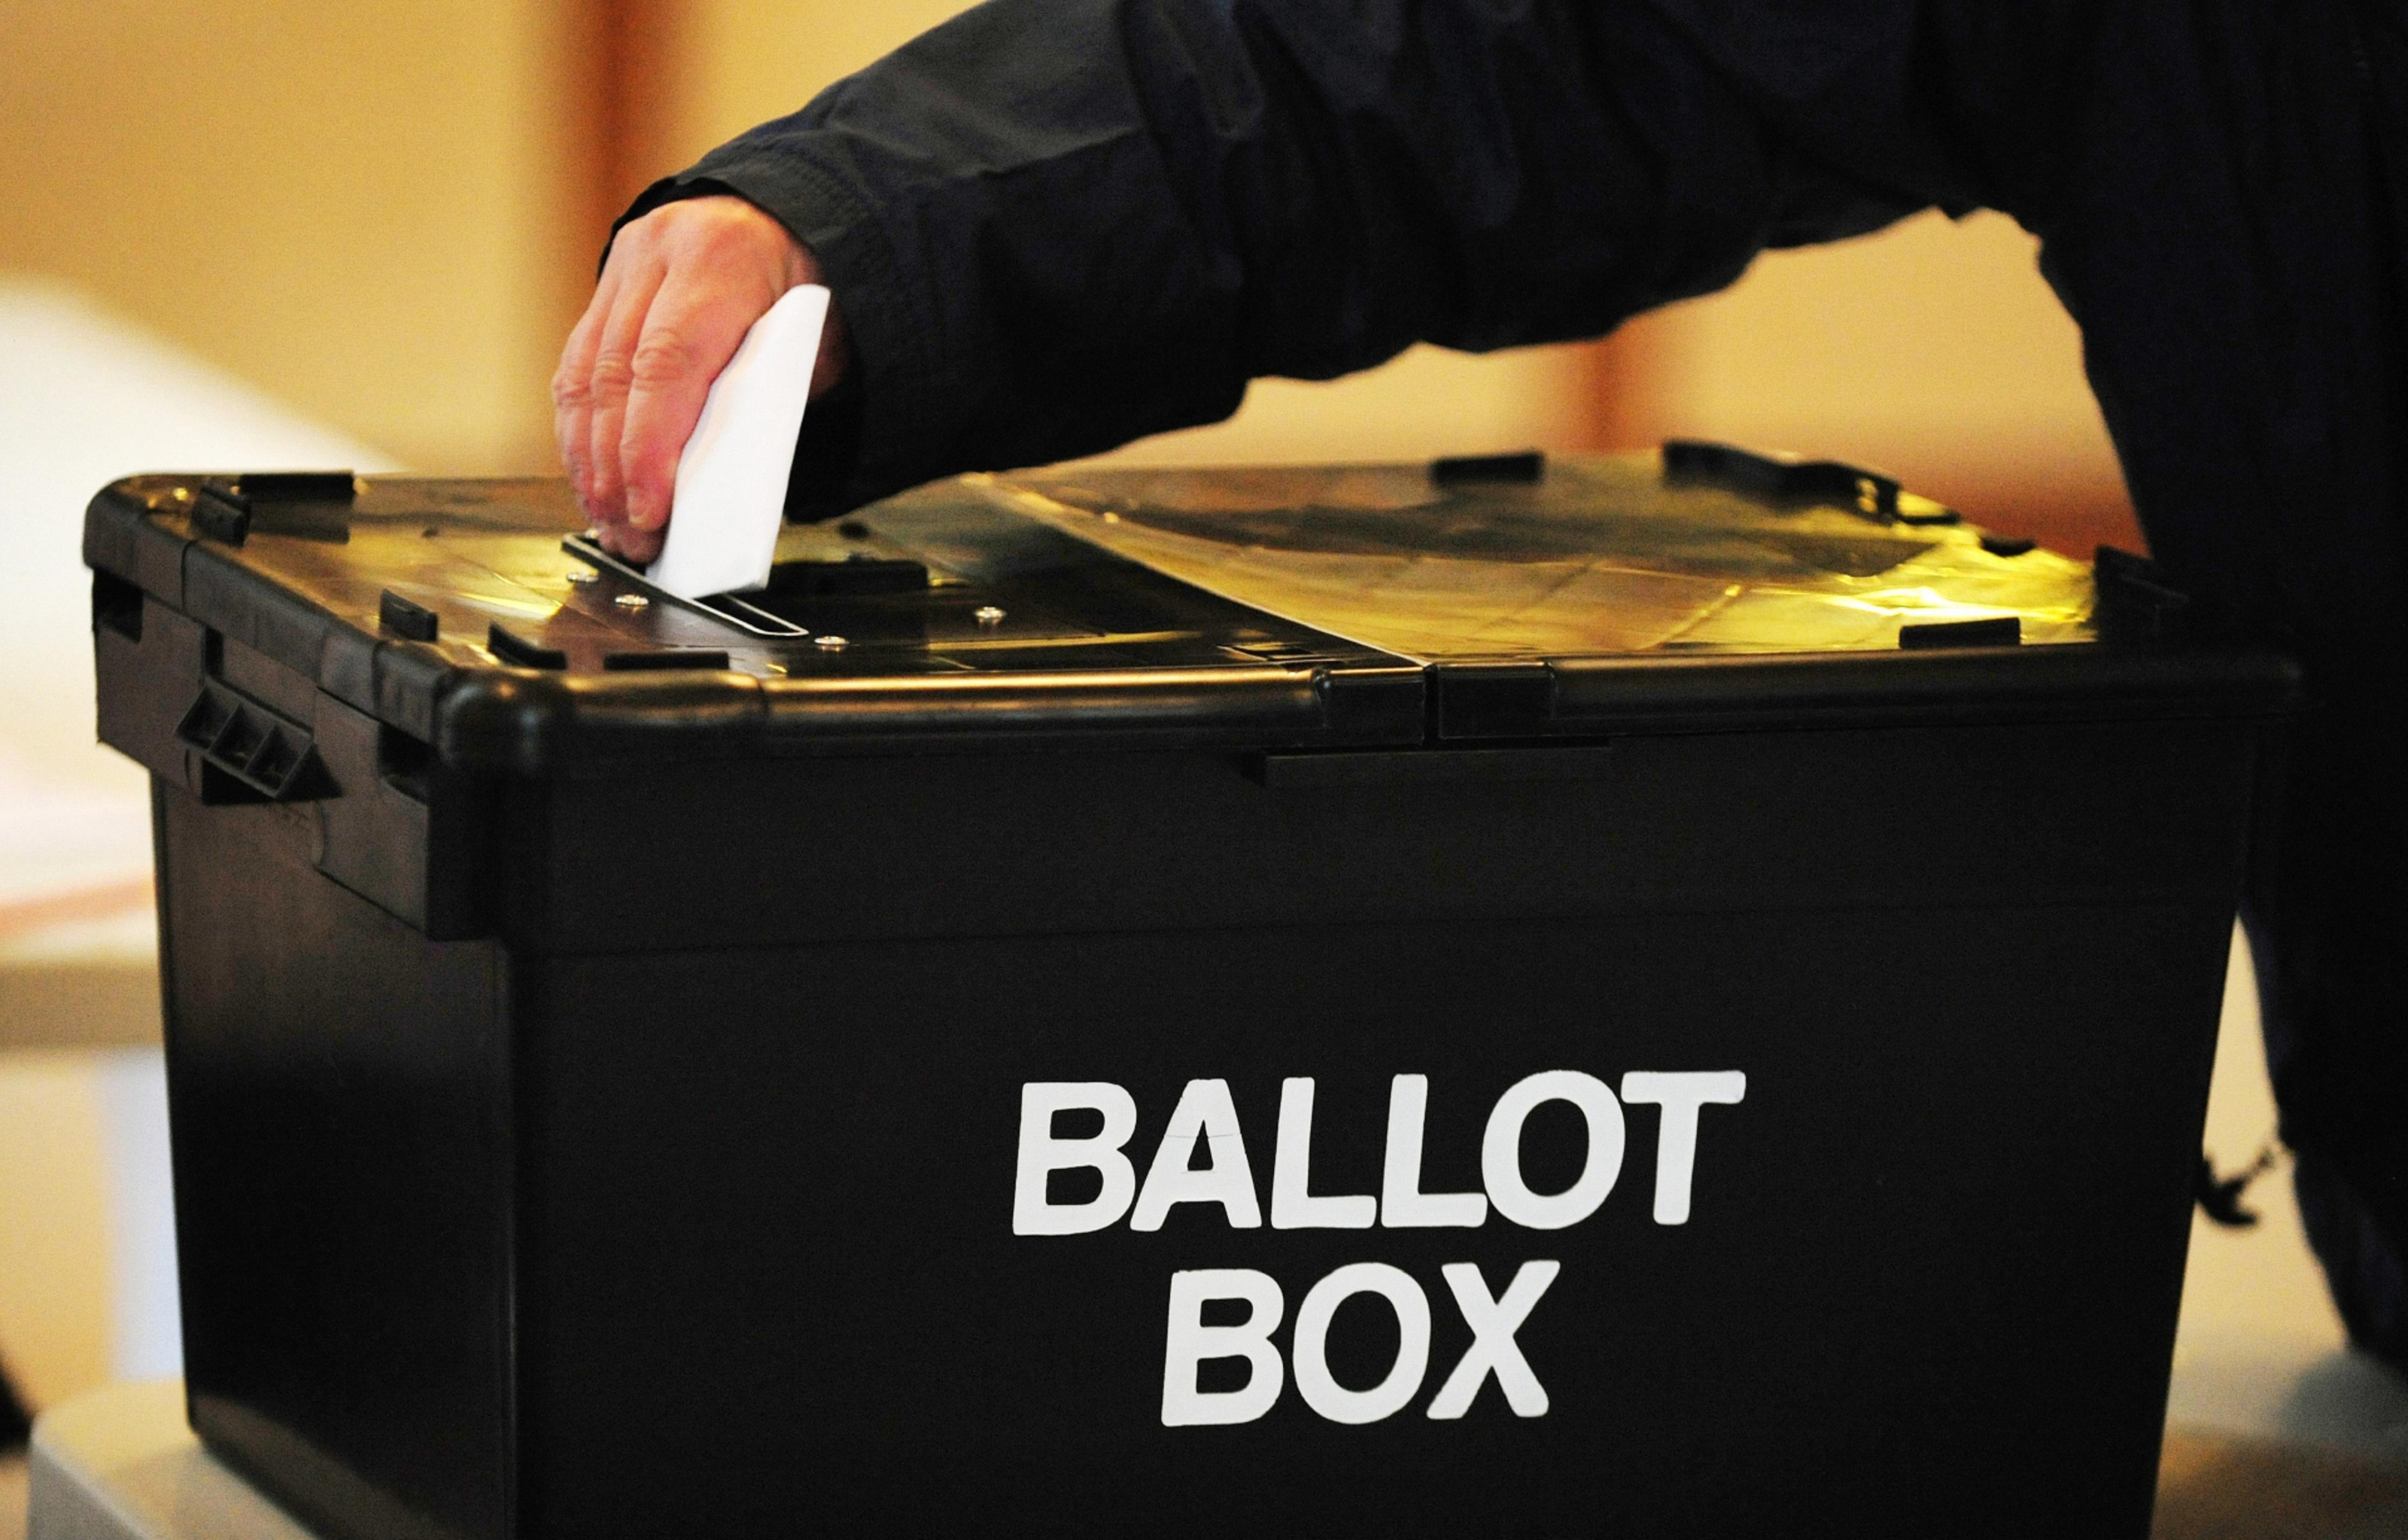 The UK is set to go to the polls on May 23 for the European Parliament elections